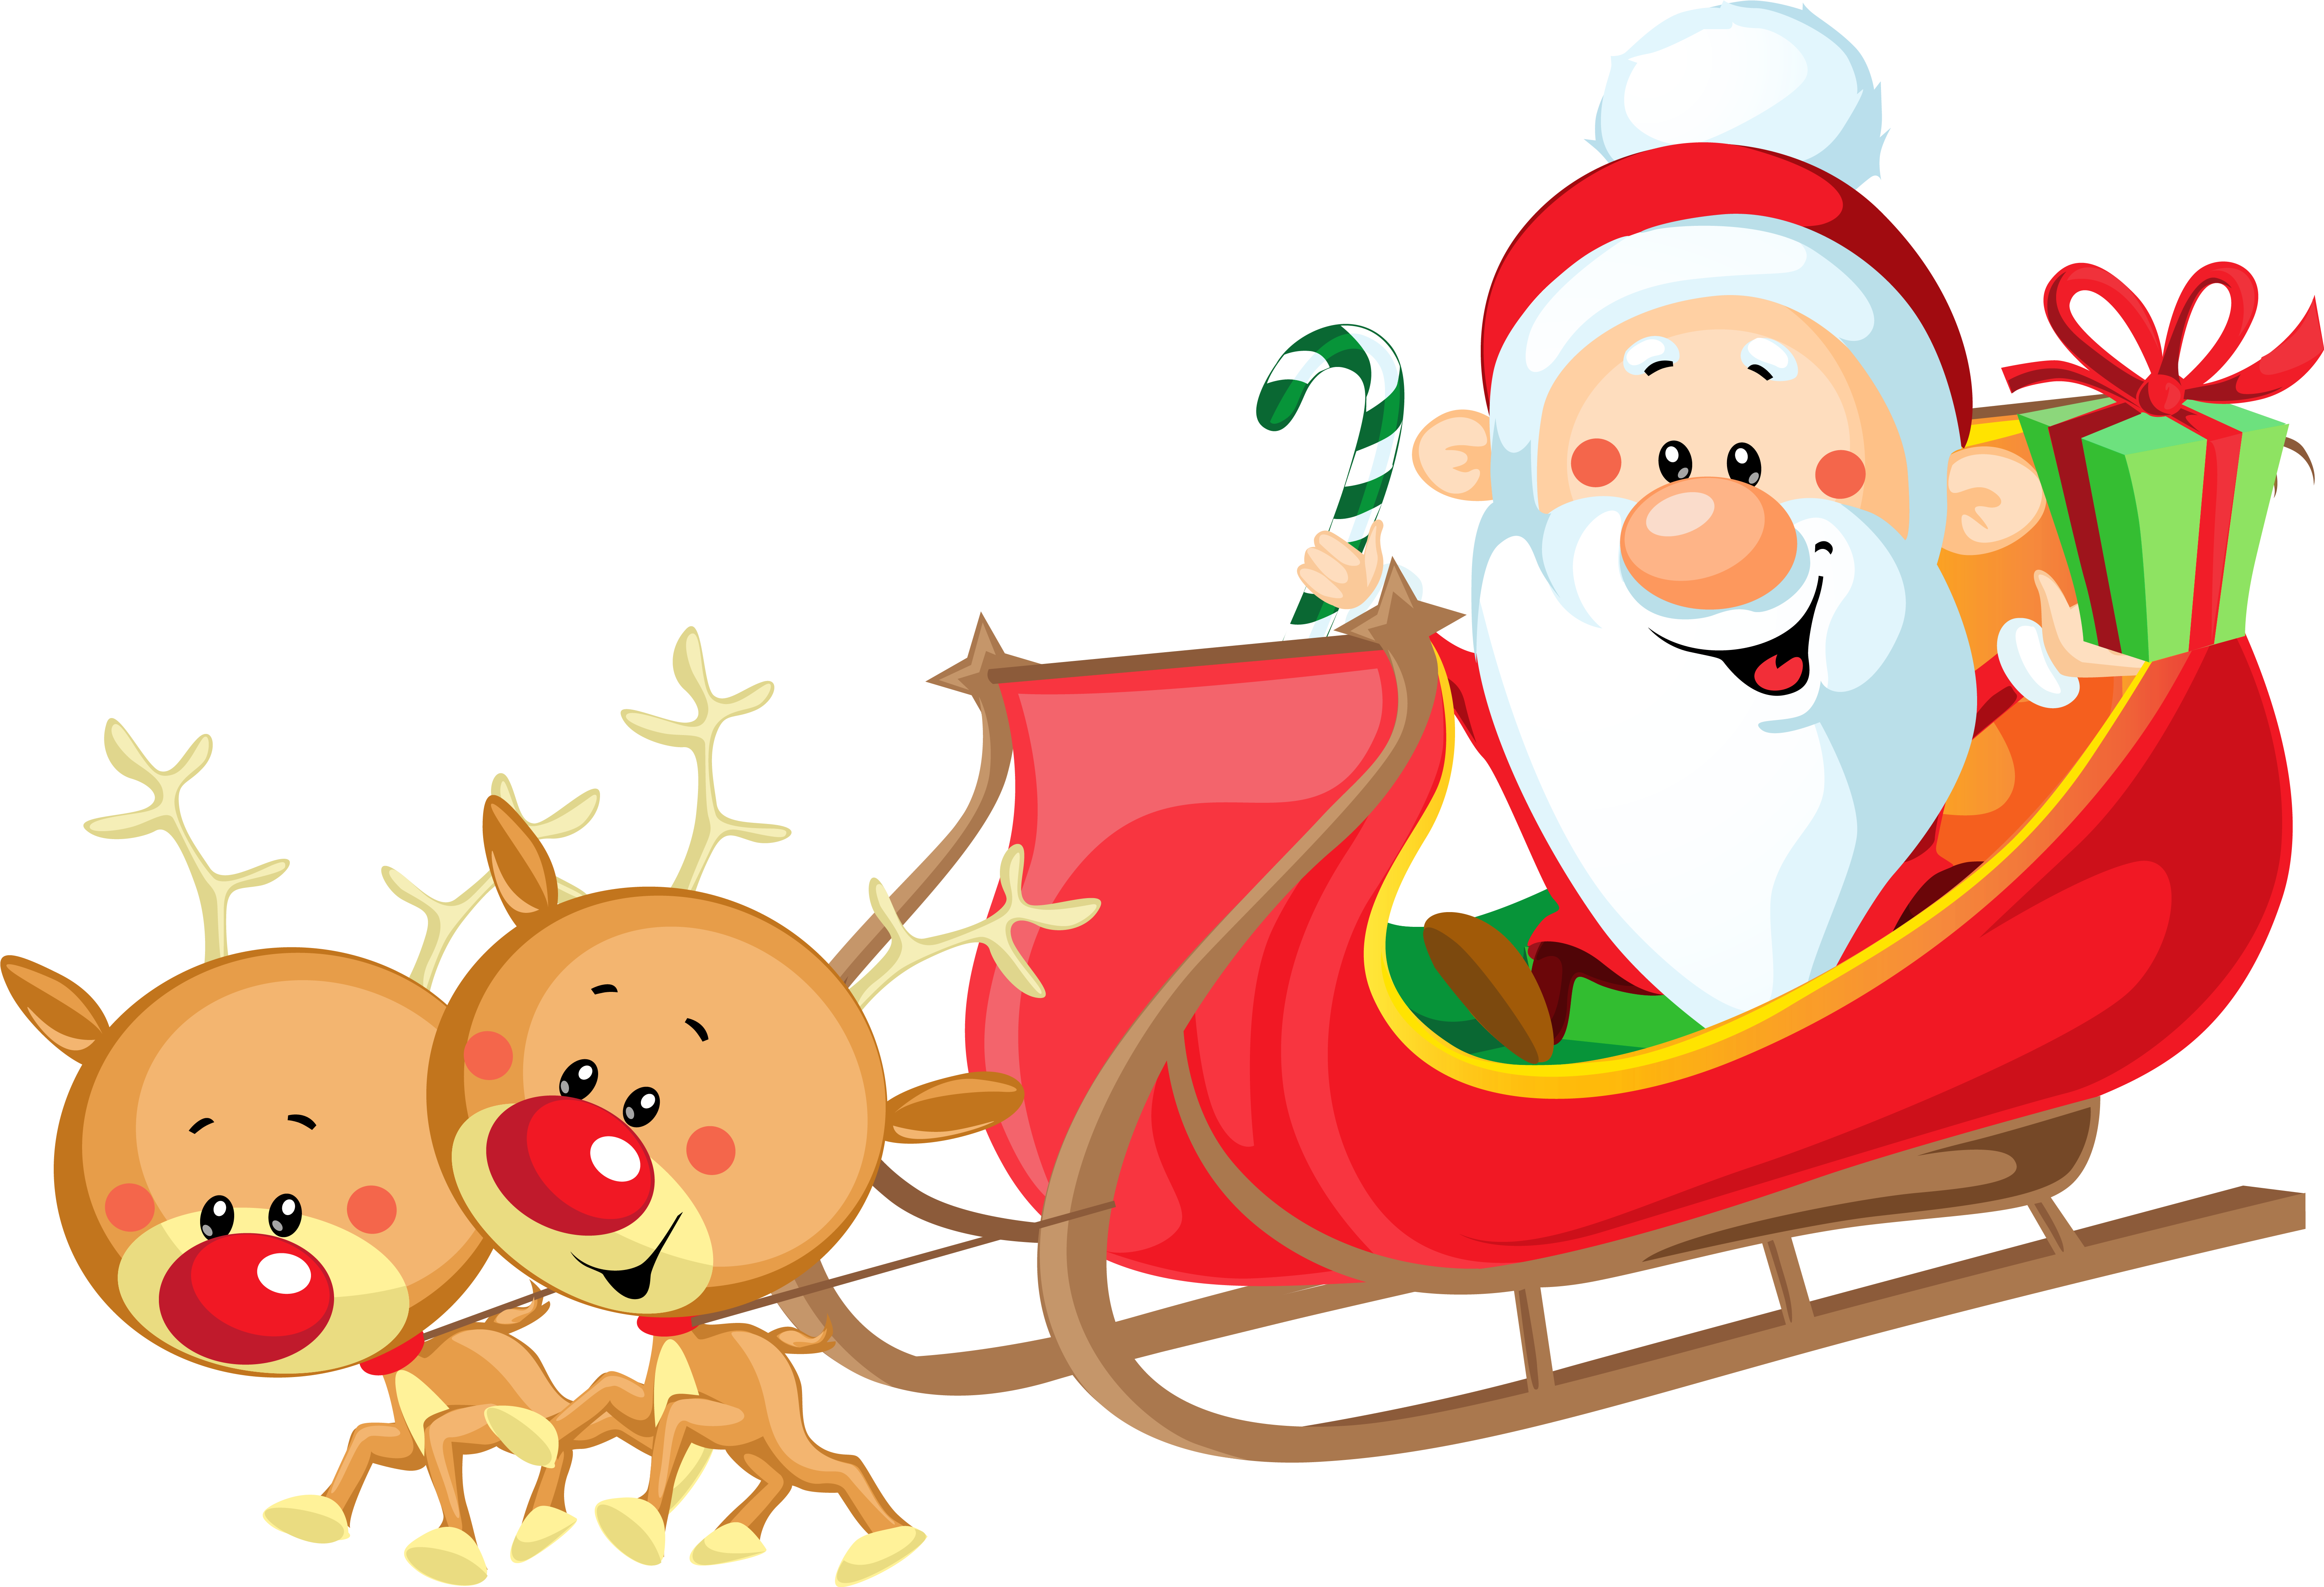 Sled clipart people. Download cute santa with